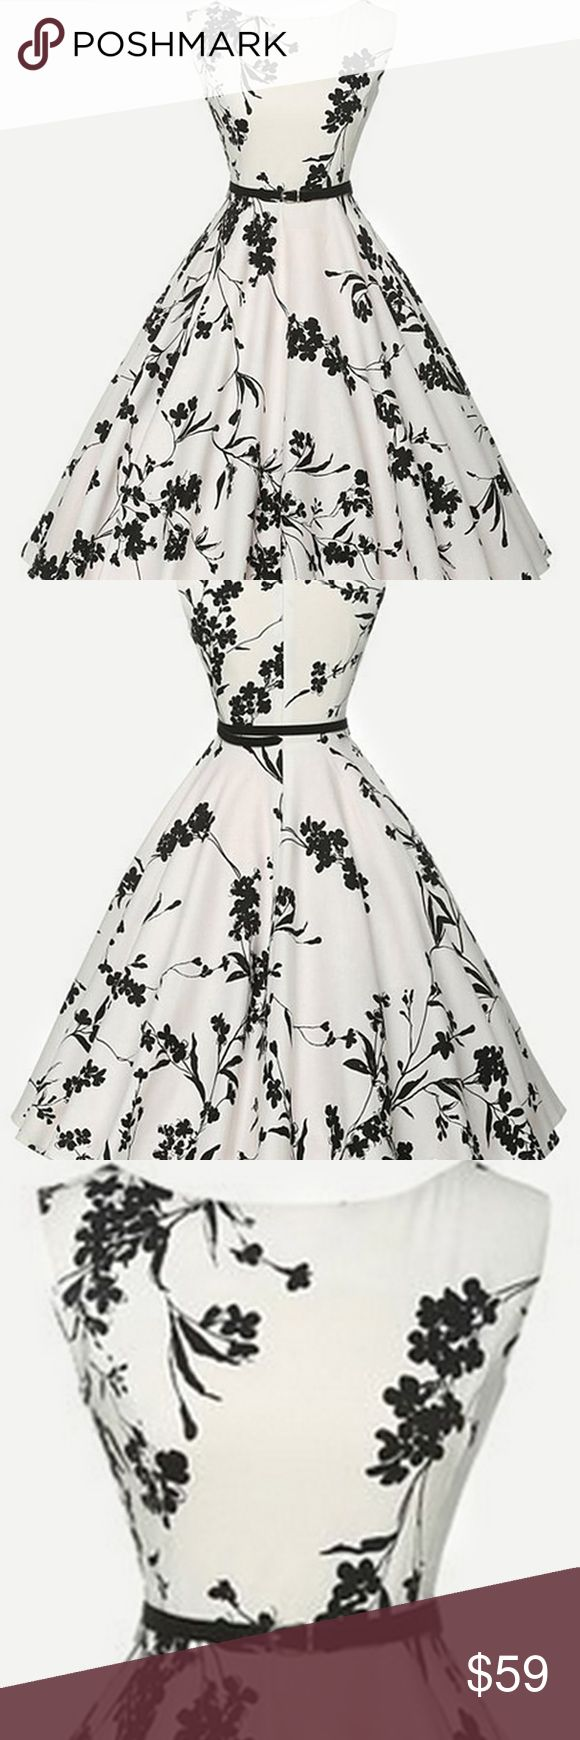 Dress With Belt  Size S M L XL XXL XXXL XXXXL in inches: Shoulder 10.6 11.0 11.4 11.8 12.2 12.6 13.0  Bust 32.3 33.9 35.4 37.0 38.6 40.2 41.7  Waist Size 26.8 28.3 29.9 31.5 33.1 34.6 36.2  Length 37.8 38.2 38.6 39.0 39.4 39.8 40.2  Cuff 20.1 20.5 20.9 21.3 21.7 22.0 22.4  Material: Polyester   Color: White, Black and White   Neckline: Boat Neck   Style: Vintage, Elegant, Party   Decoration: Zip, Belted   Sleeve Length: Sleeveless   Dresses Length: Midi   Fabric: has no stretch processing…